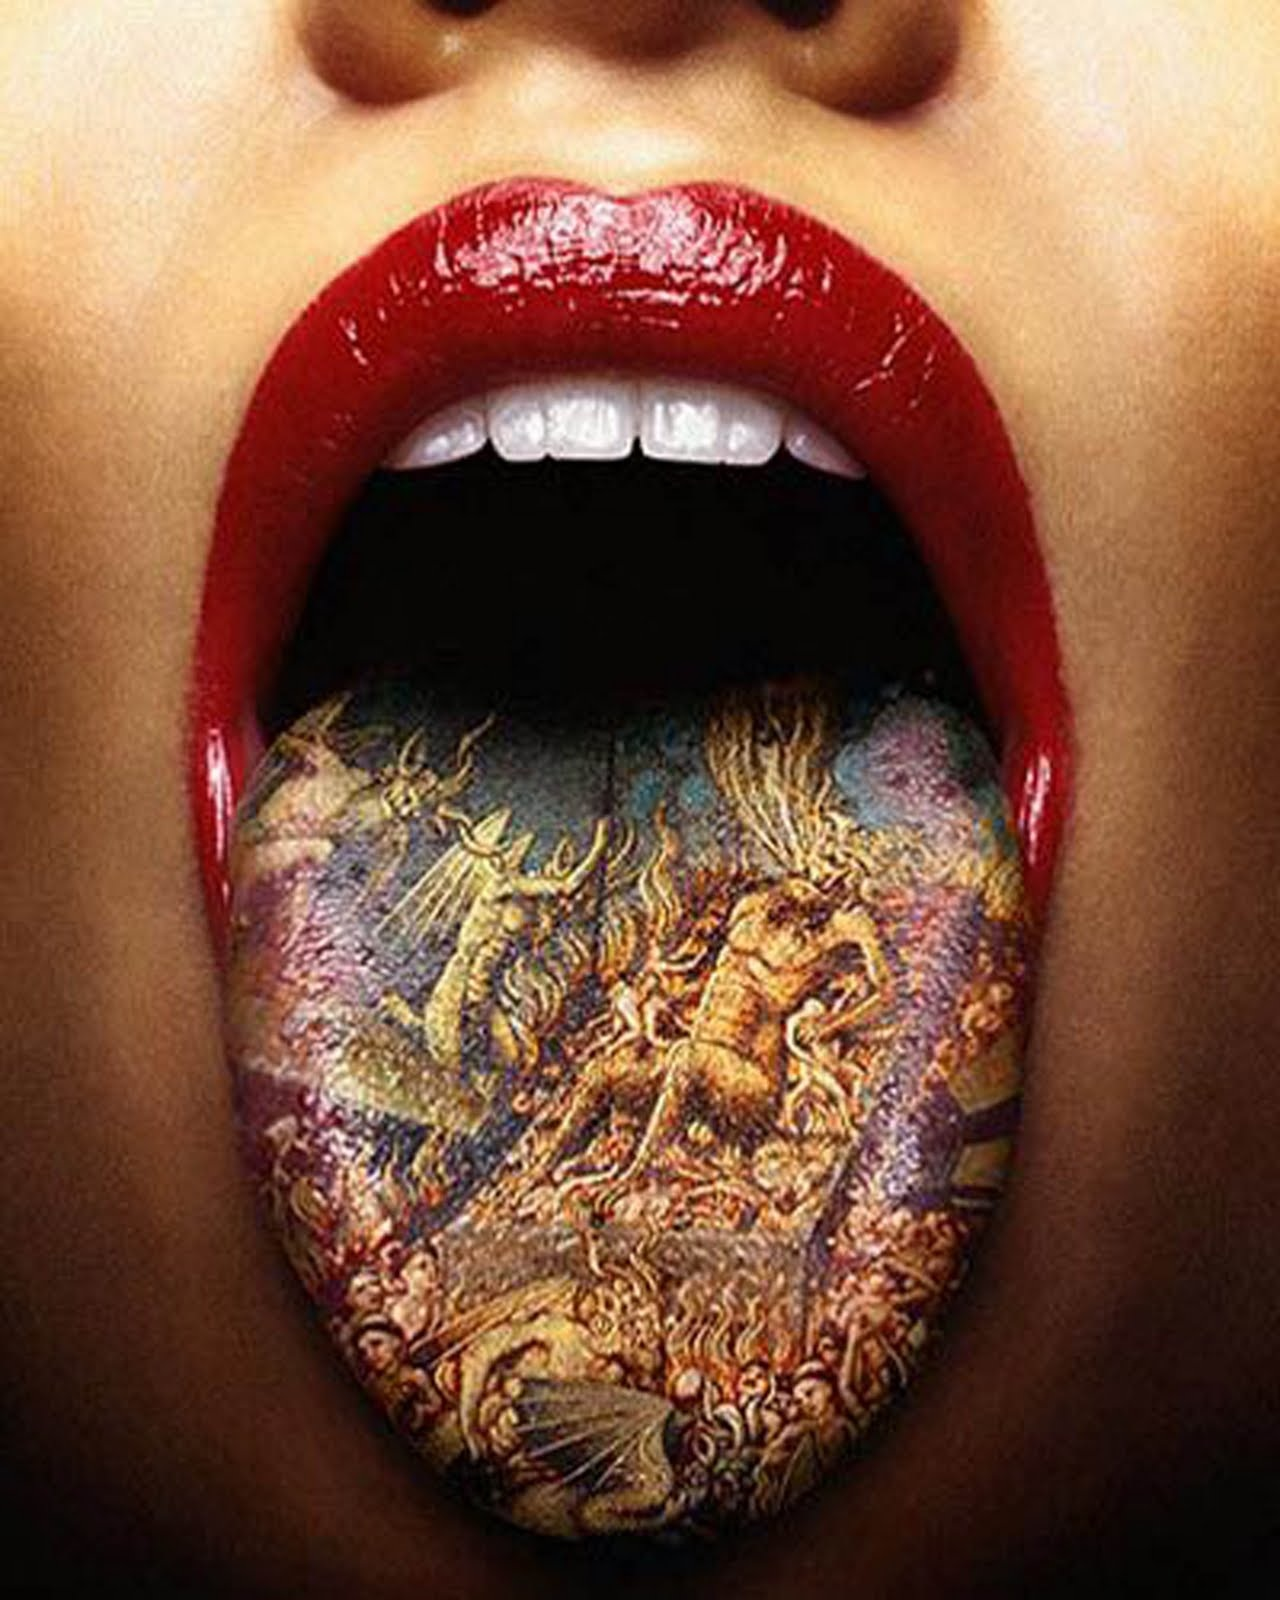 Colorful Tongue Tattoo For Girls